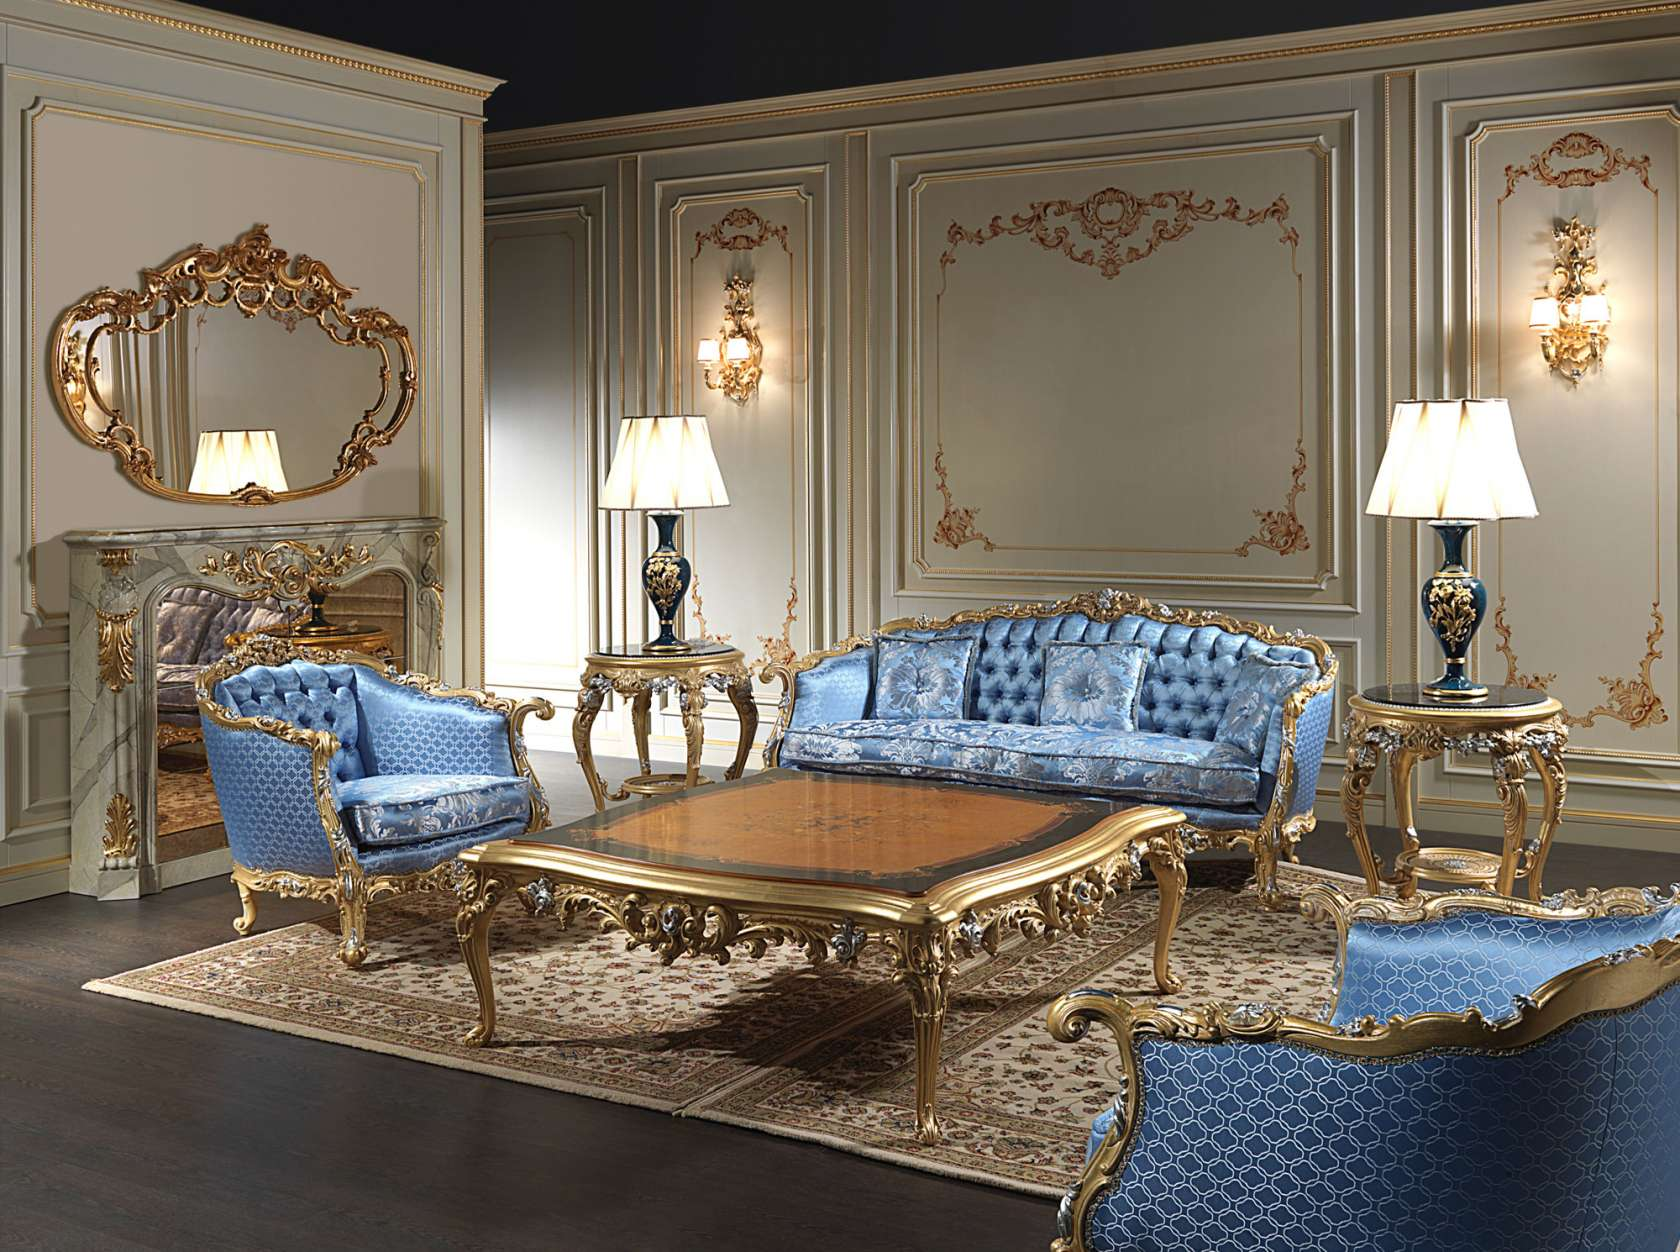 The Classic Furniture For The Living Room The Styles